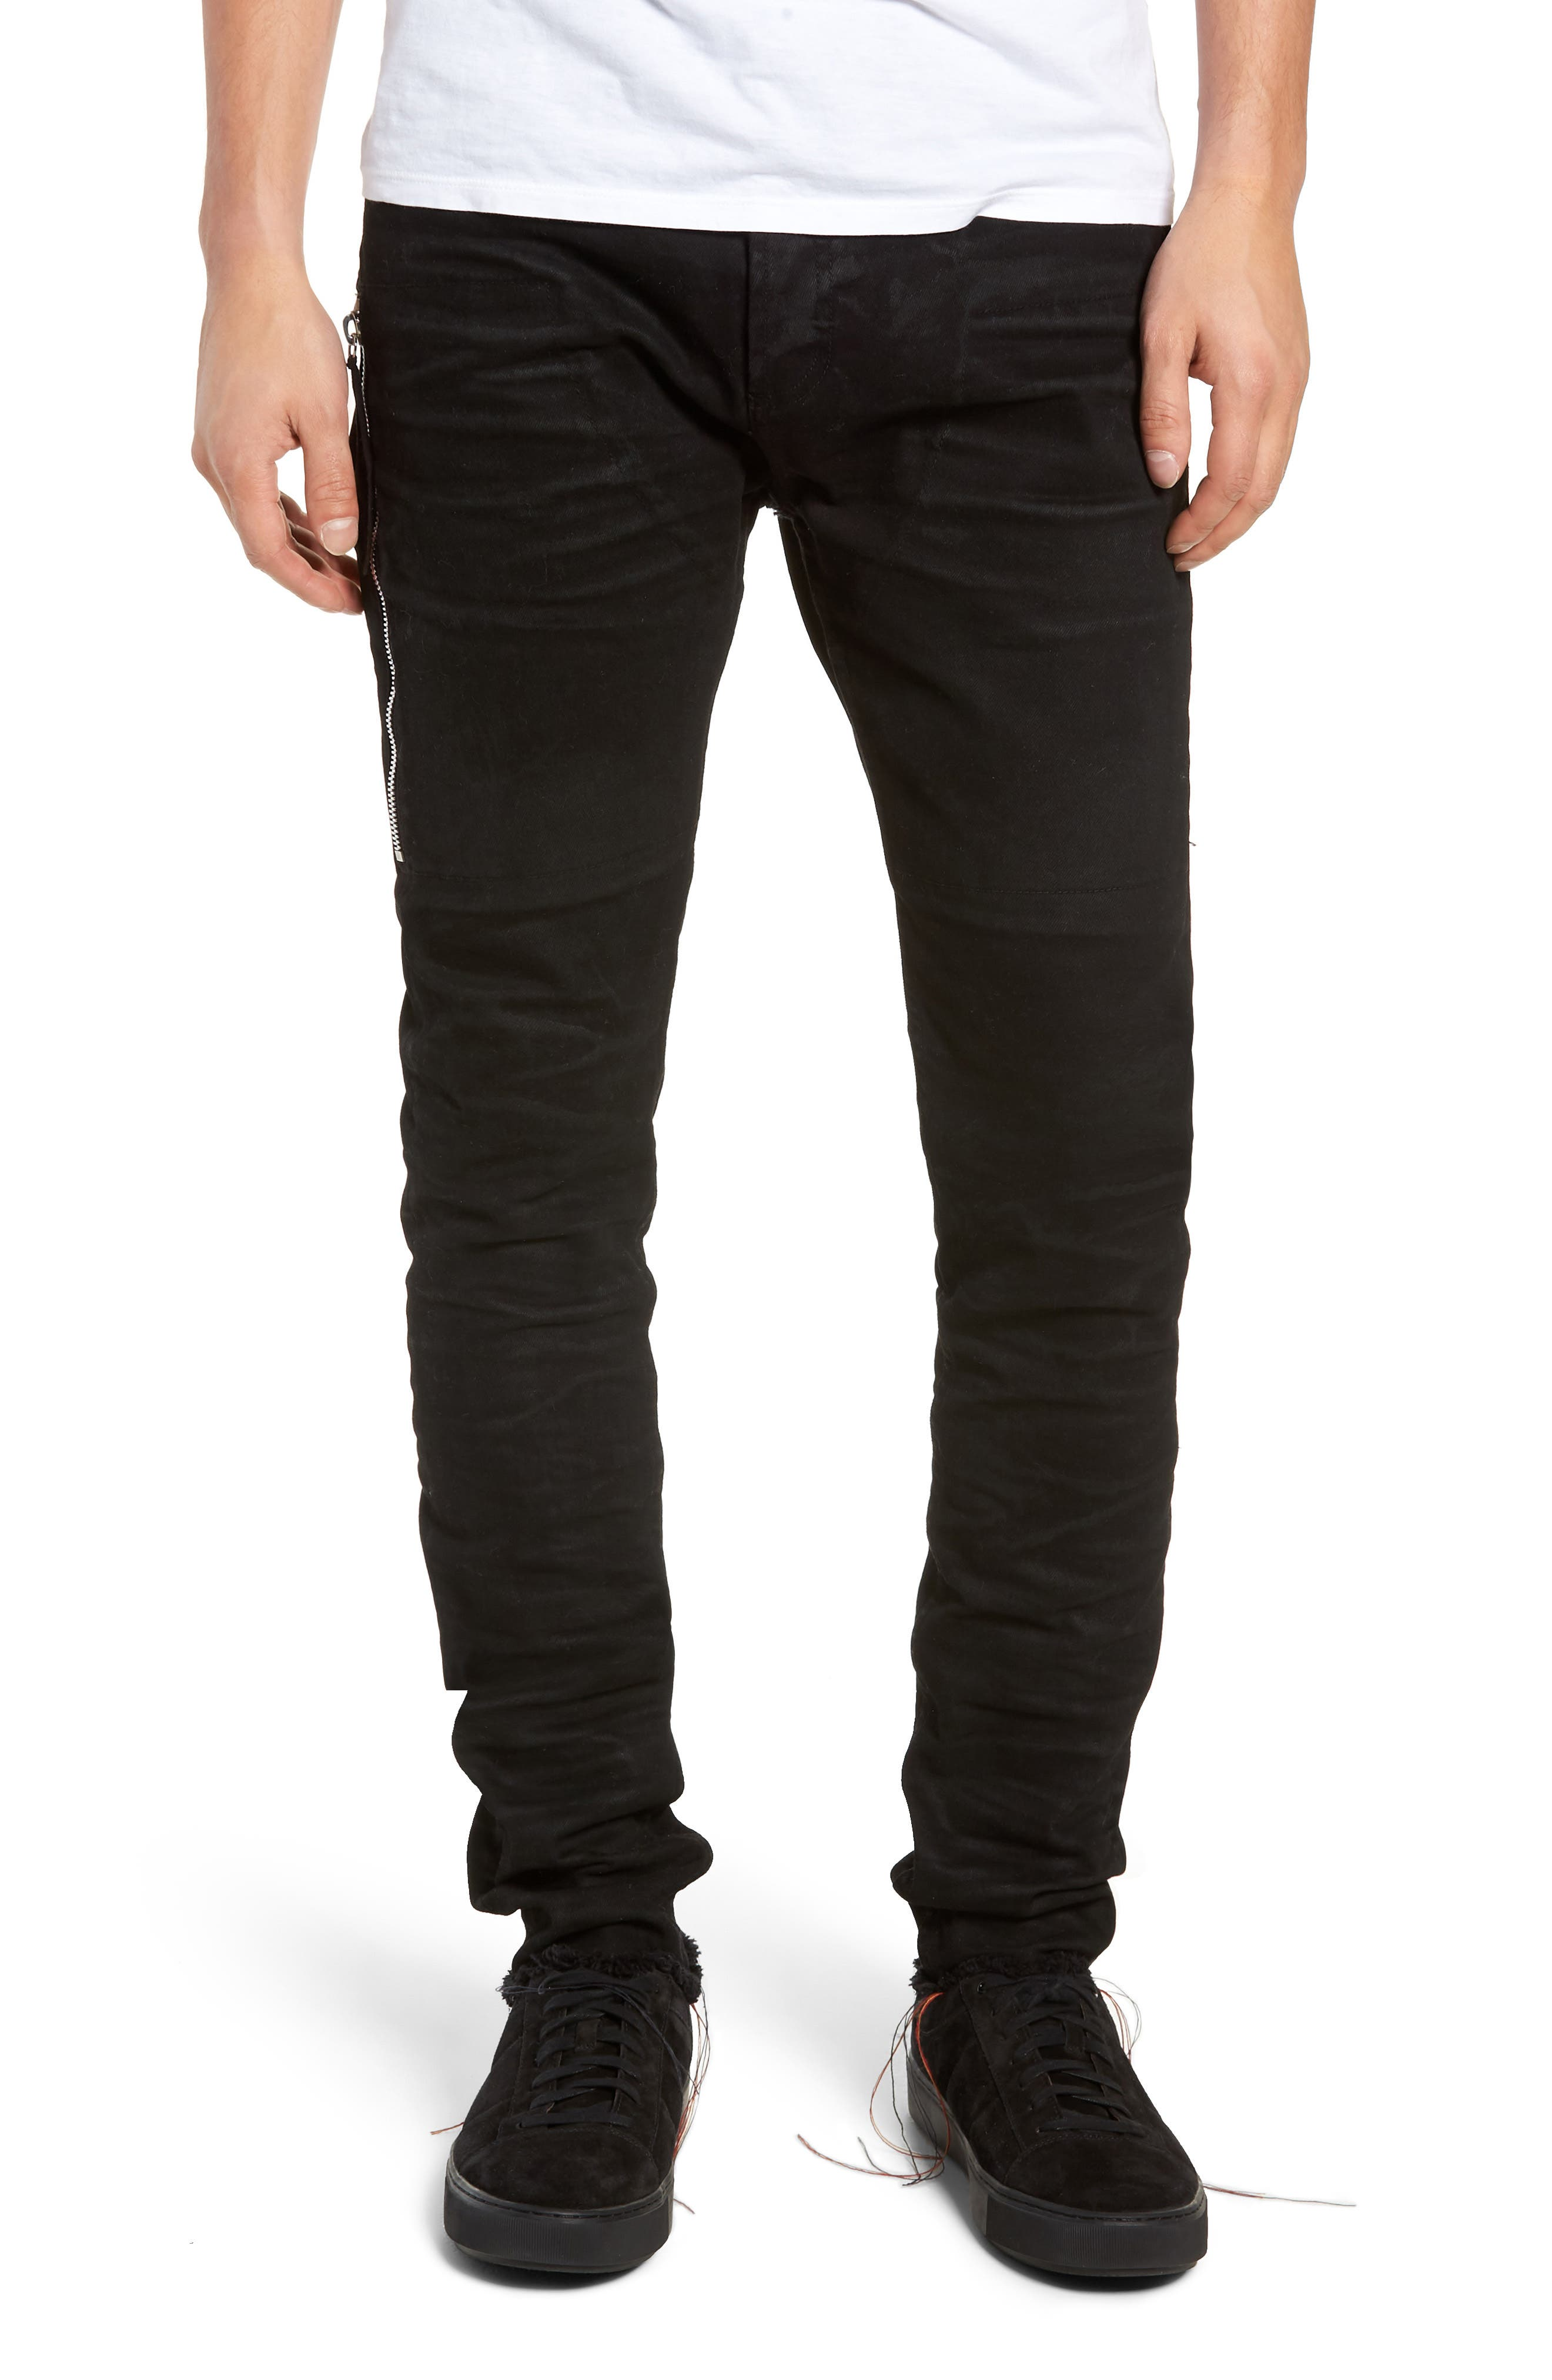 Trafford Skinny Fit Jeans,                         Main,                         color, HERITAGE WAX